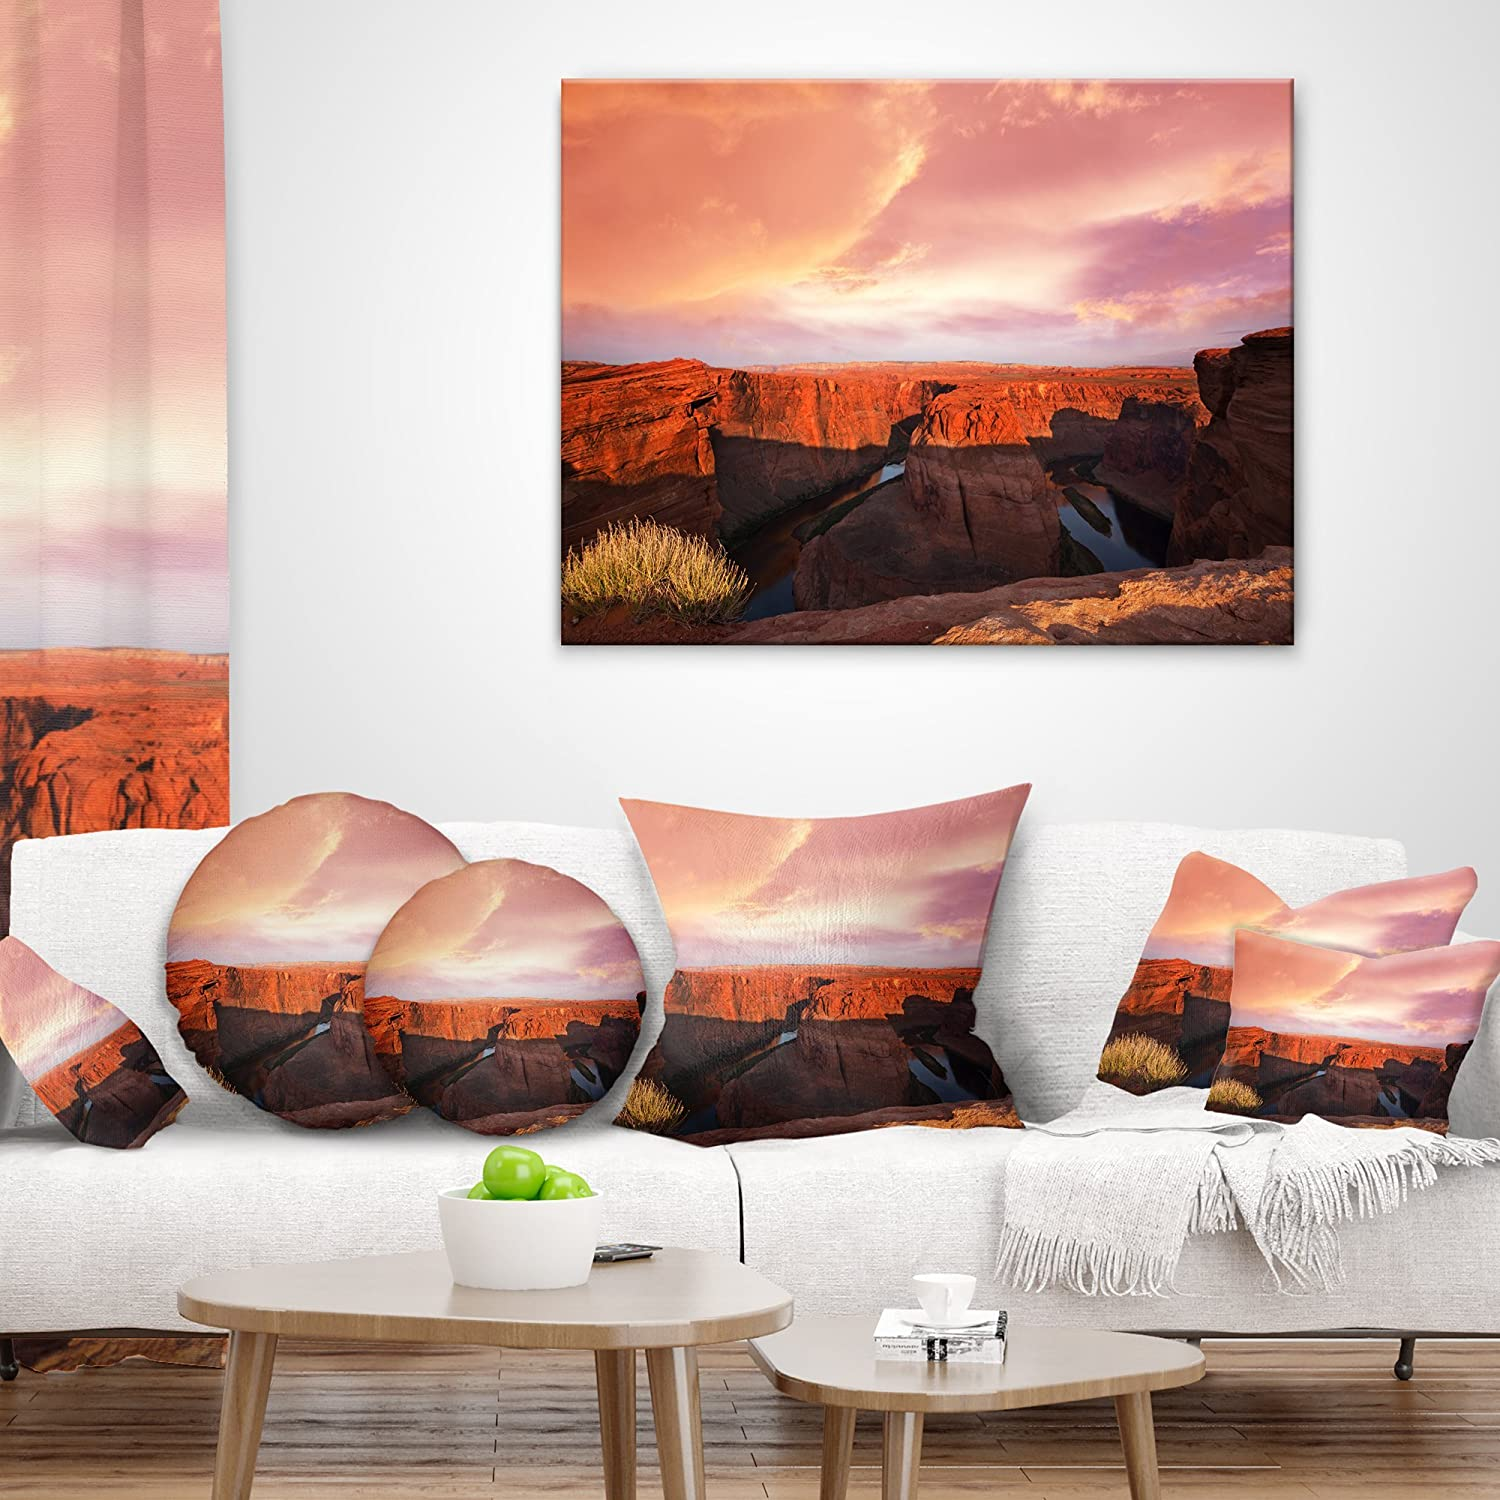 Designart CU12533-16-16 Horse Shoe Bend Under Cloudy Sky Landscape Printed Cushion Cover for Living Room in Insert Side Sofa Throw Pillow 16 in x 16 in